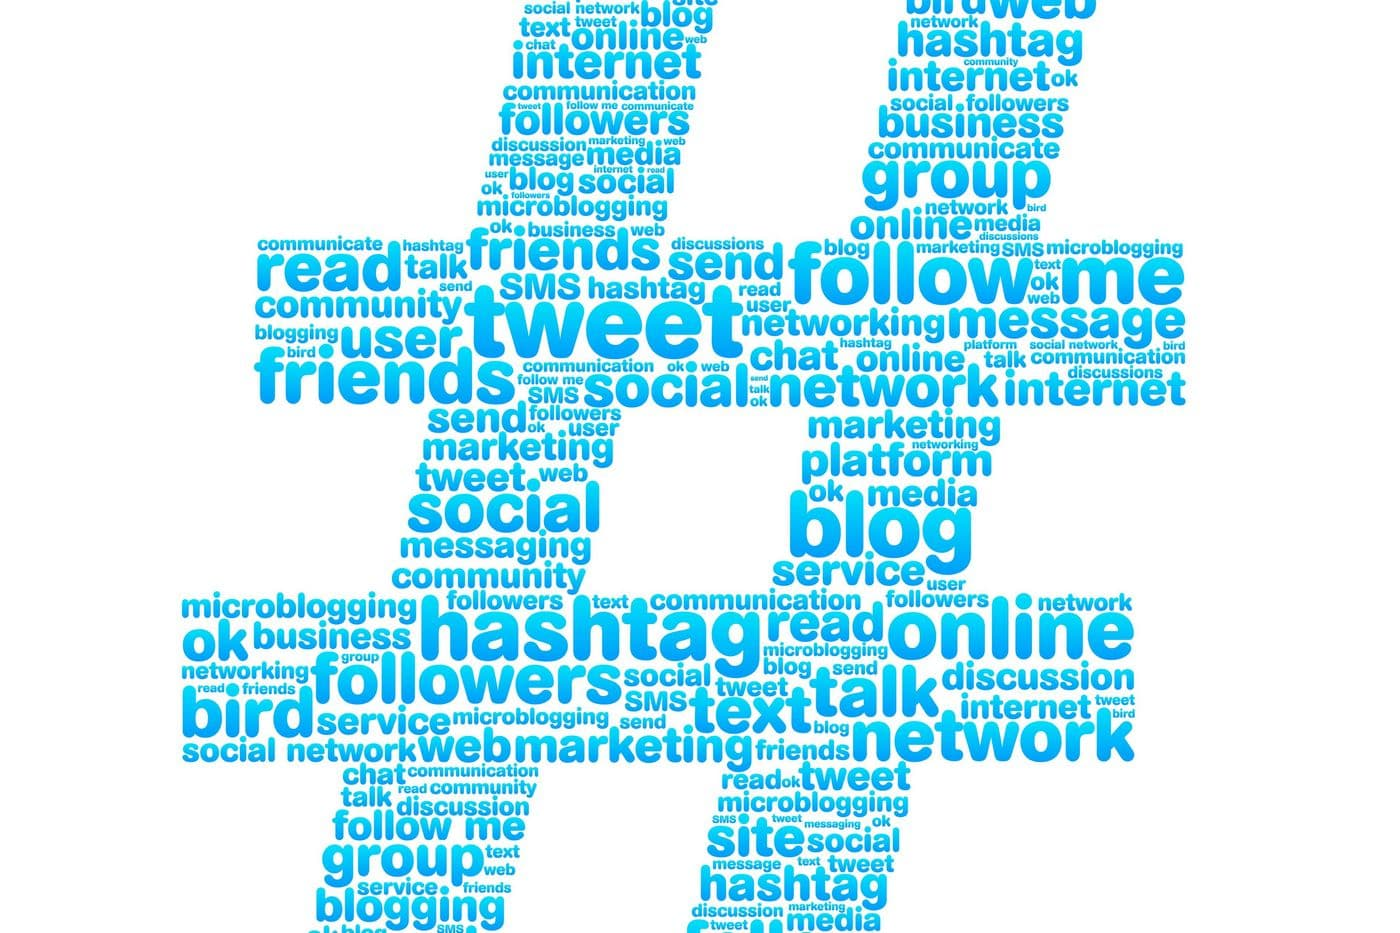 Hashtags Keyword Search Optimize Images Facebook Linkedin Content Hangouts Pinterest